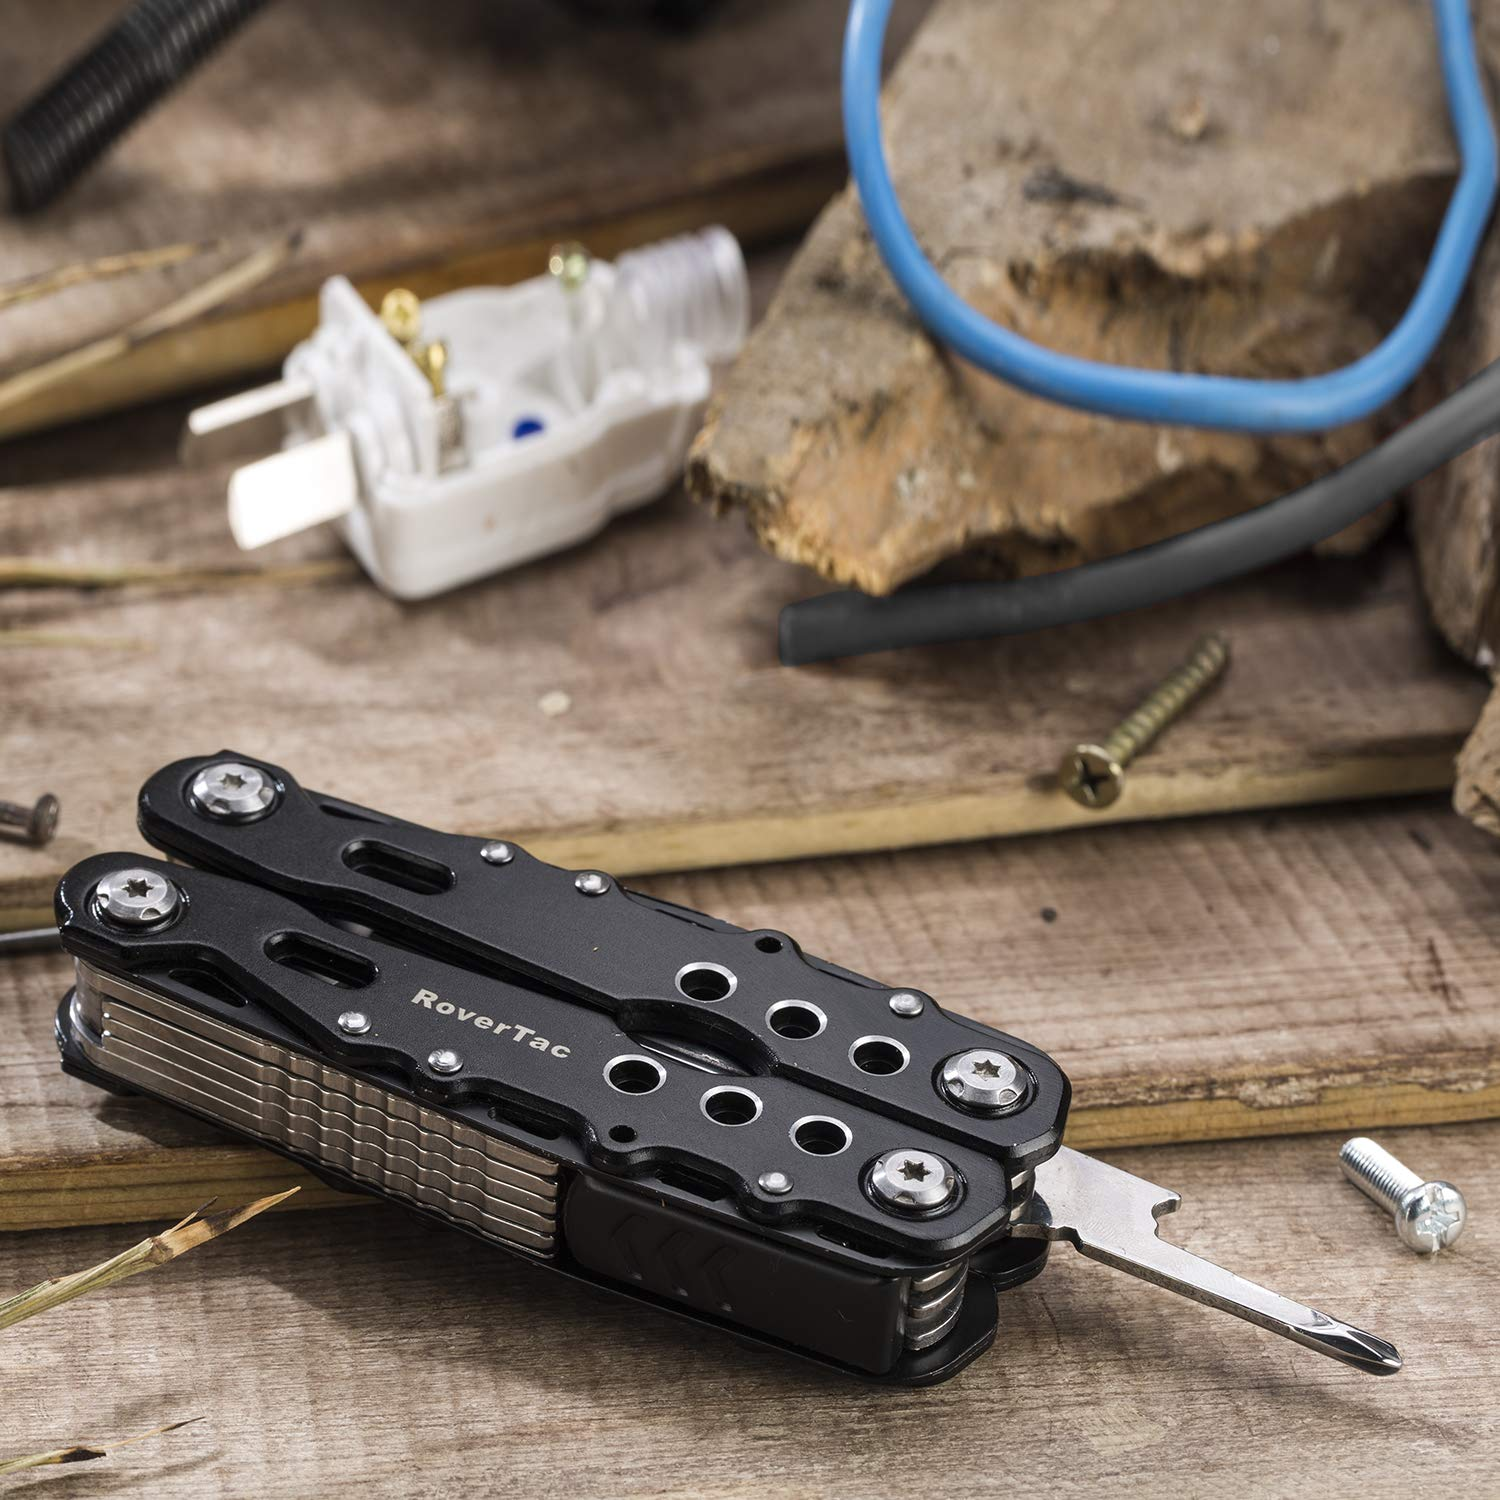 12 in 1 Multi tool Pliers RoverTac Pocket Knife with Durable Nylon Sheath, Multitool with Pliers, Bottle Opener, Screwdriver, Saw-Perfect for Outdoor, Survival, Camping, Fishing, Hiking (black) by RoverTac (Image #4)